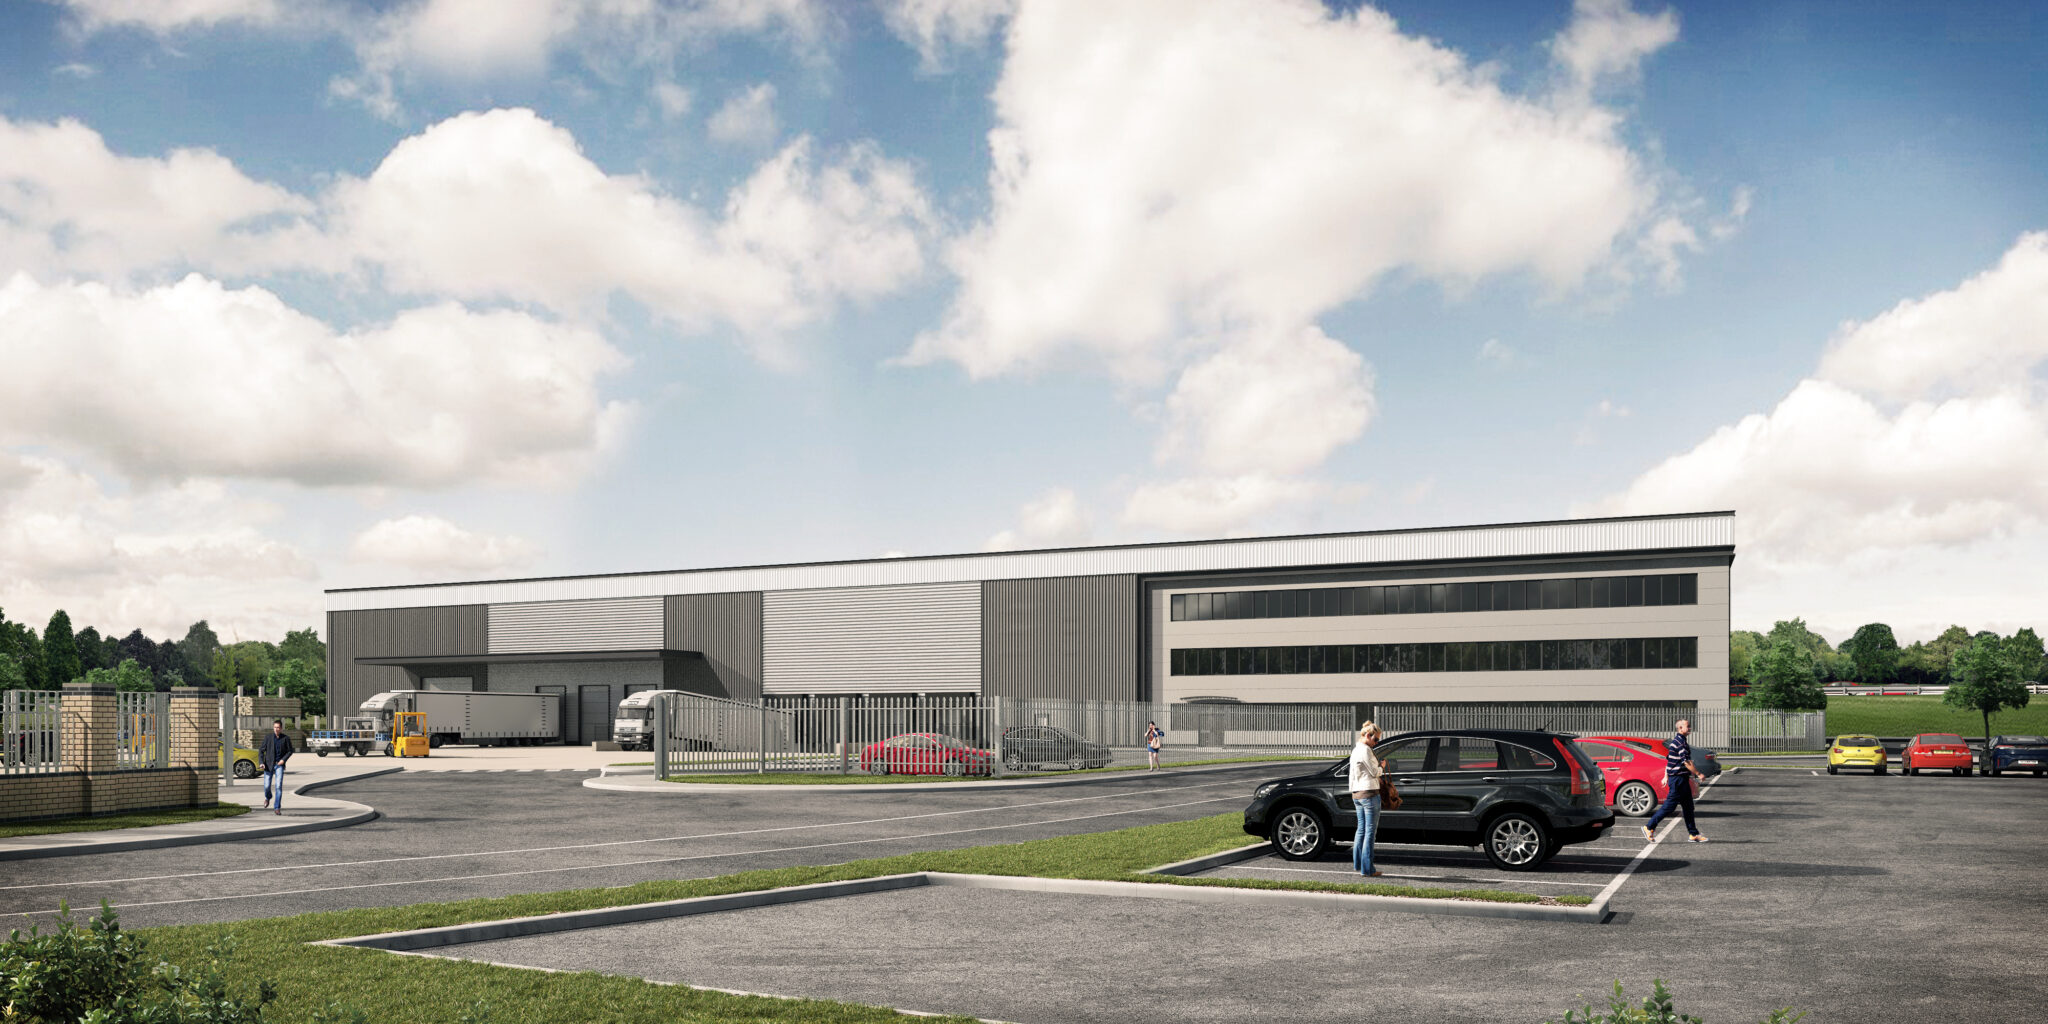 STERLING CAPITOL AND PLP AGREE TO DELIVER A PRIME LEEDS LOGISTICS SITE